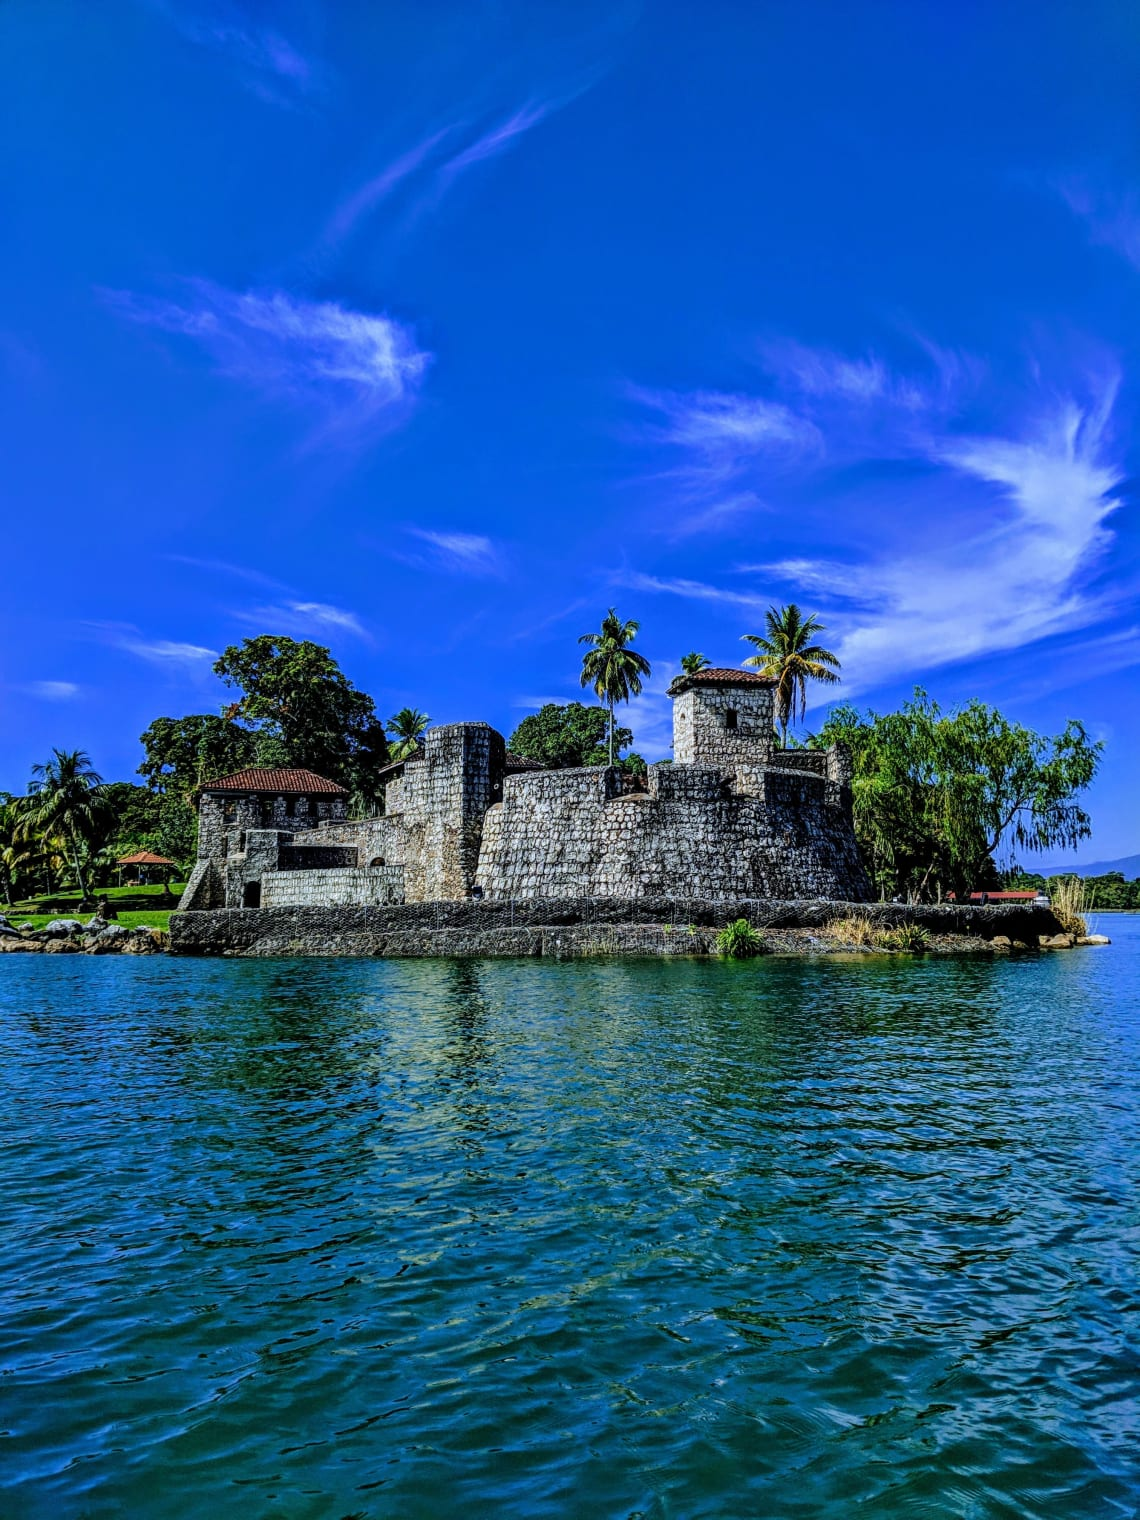 Best things to do in Guatemala: experience a melting pot of cultures in Livingston